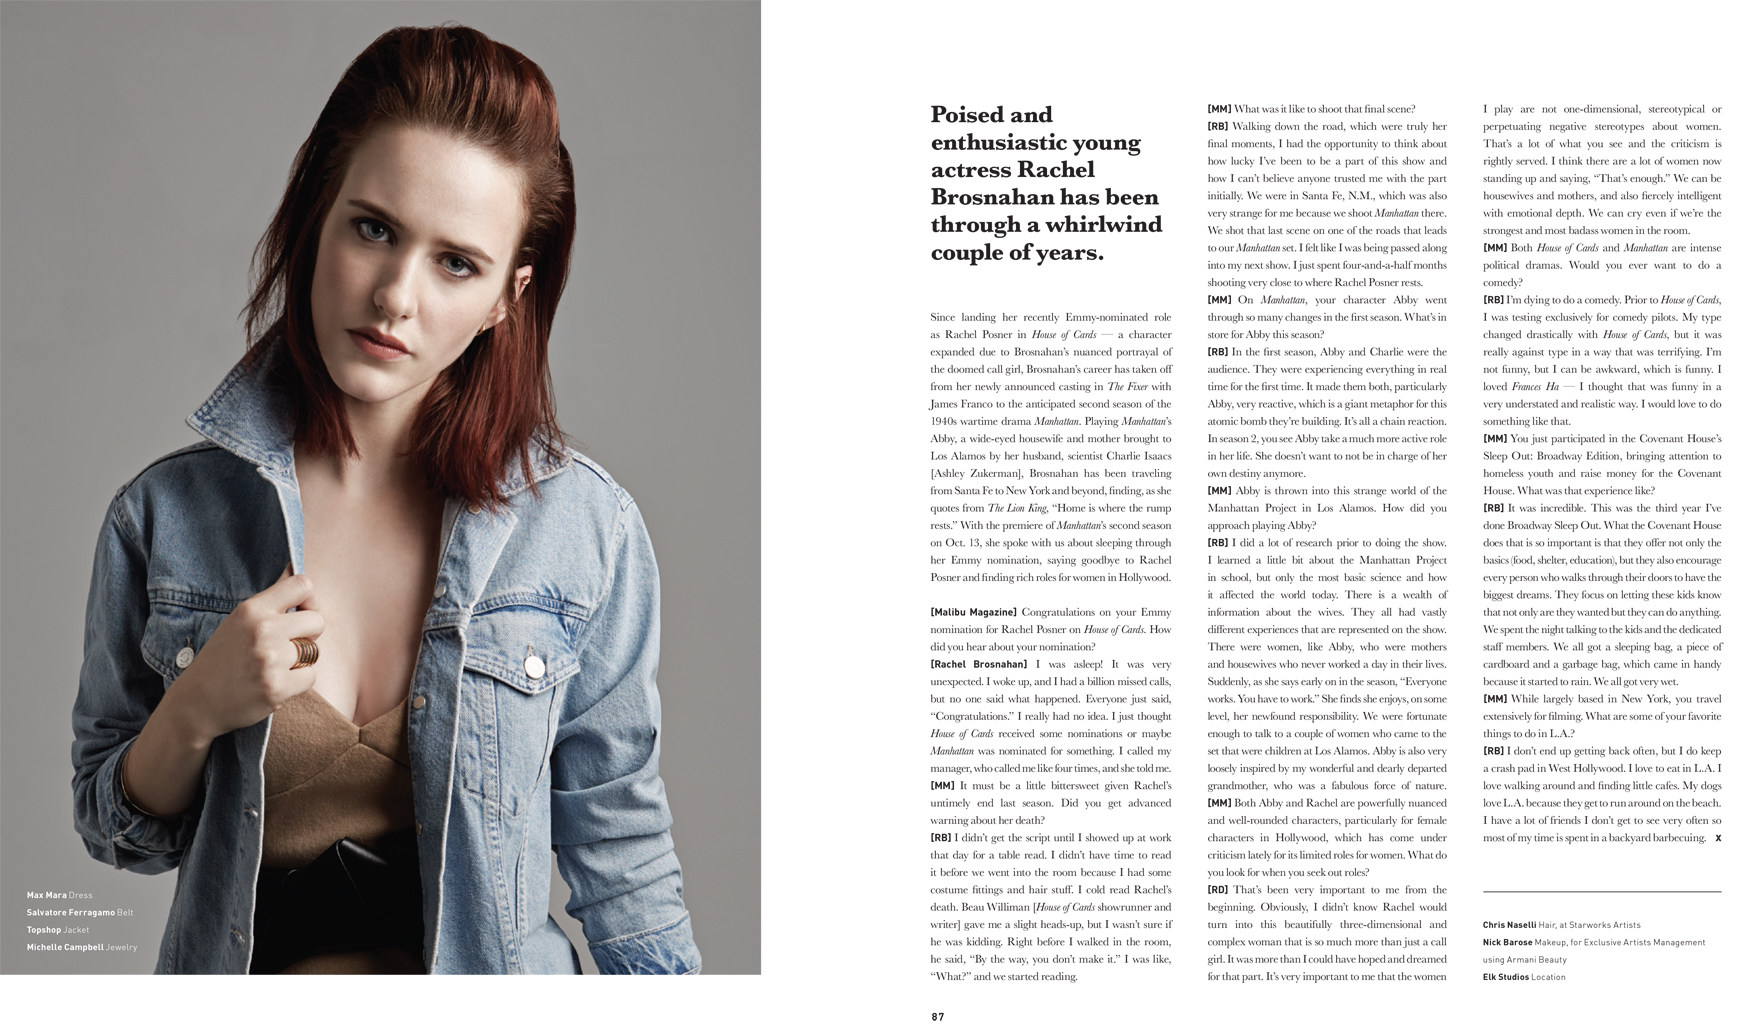 rachel brosnahan interviewrachel brosnahan orange is the new black, rachel brosnahan instagram, rachel brosnahan twitter, rachel brosnahan, rachel brosnahan imdb, rachel brosnahan boyfriend, rachel brosnahan manhattan, rachel brosnahan interview, rachel brosnahan reddit